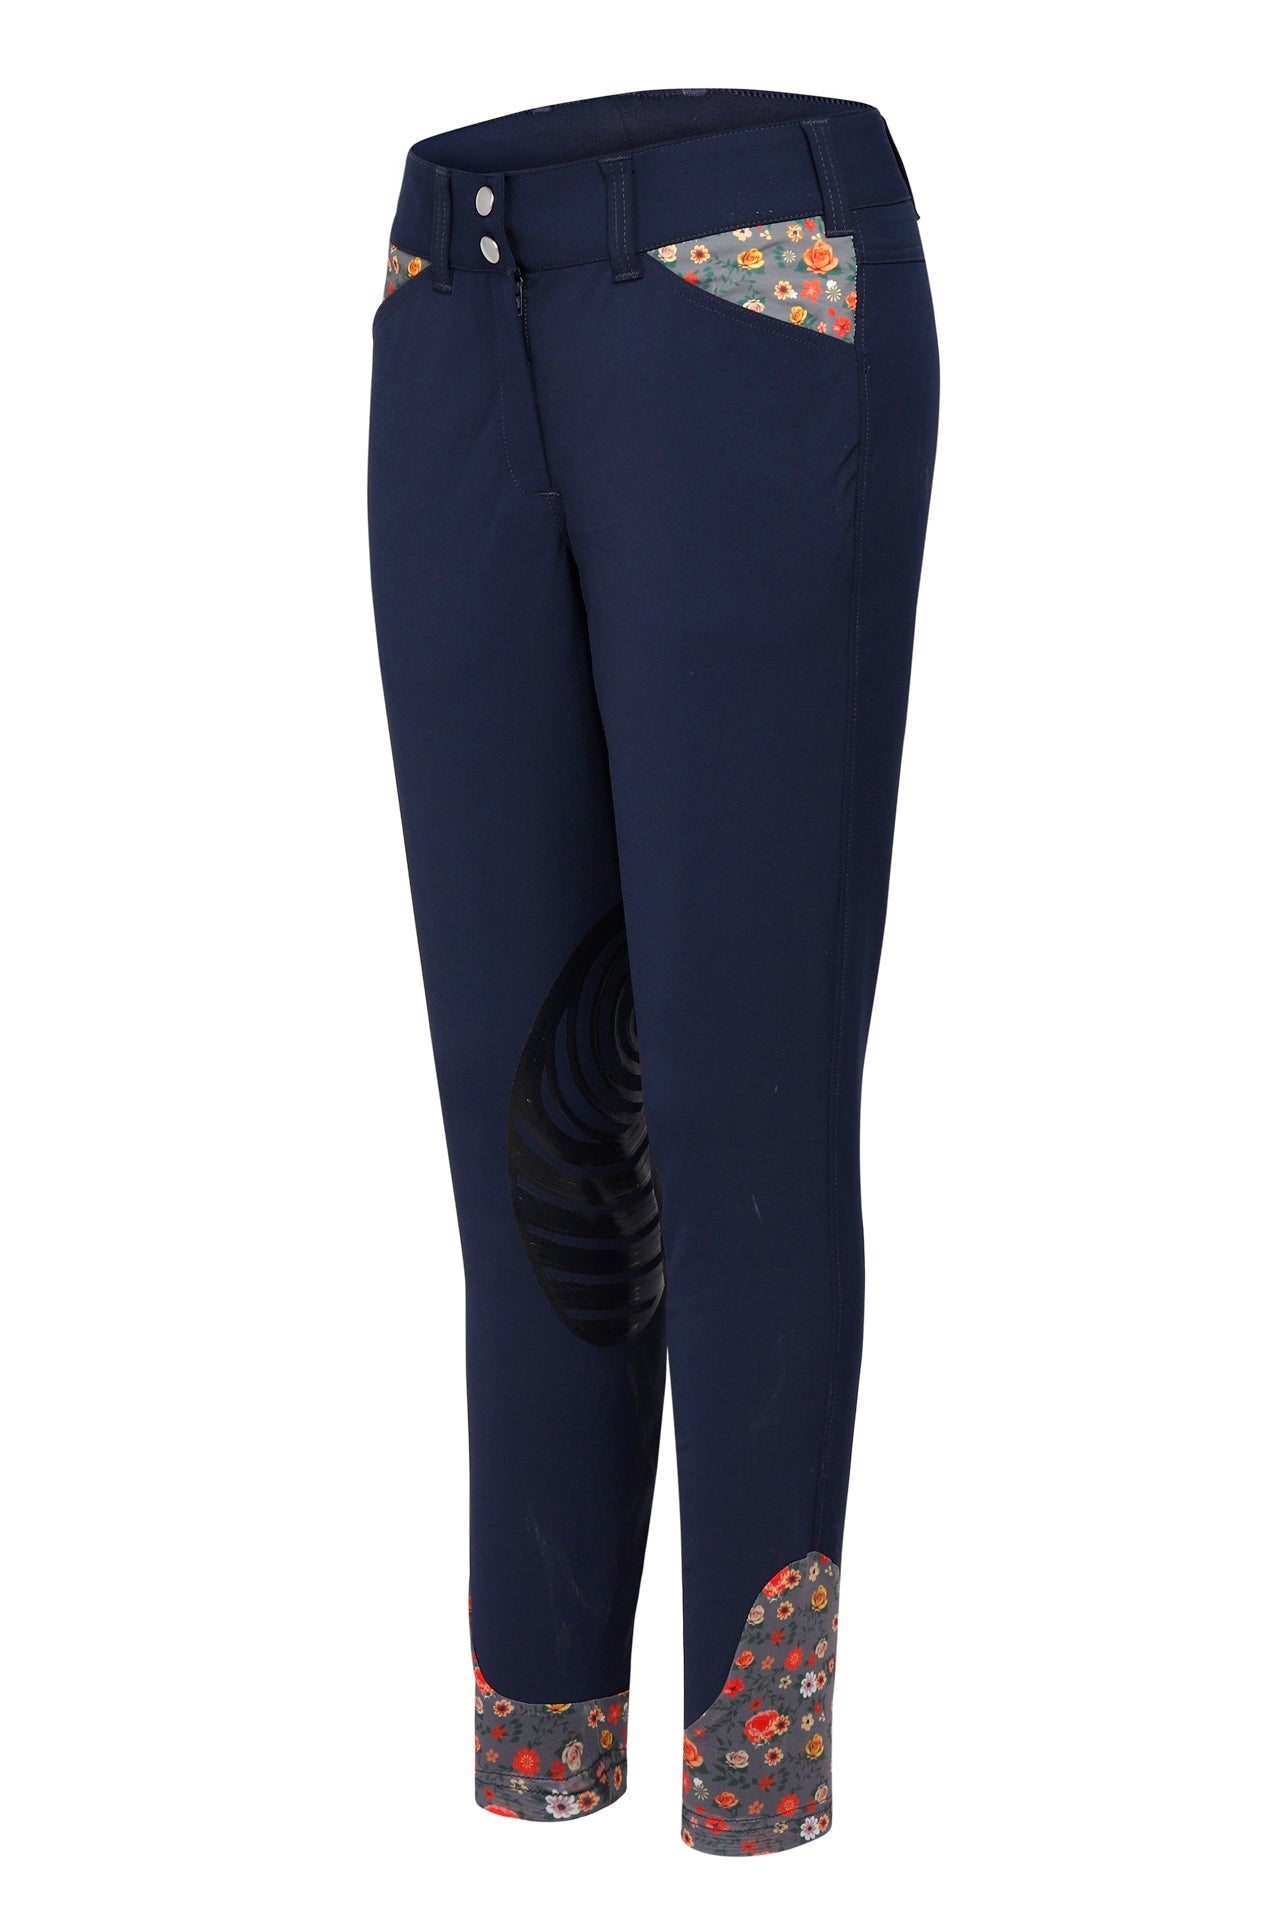 Ecorider By TuffRider Ladies Sequoia Knee Patch Breeches - TuffRider - Breeches.com